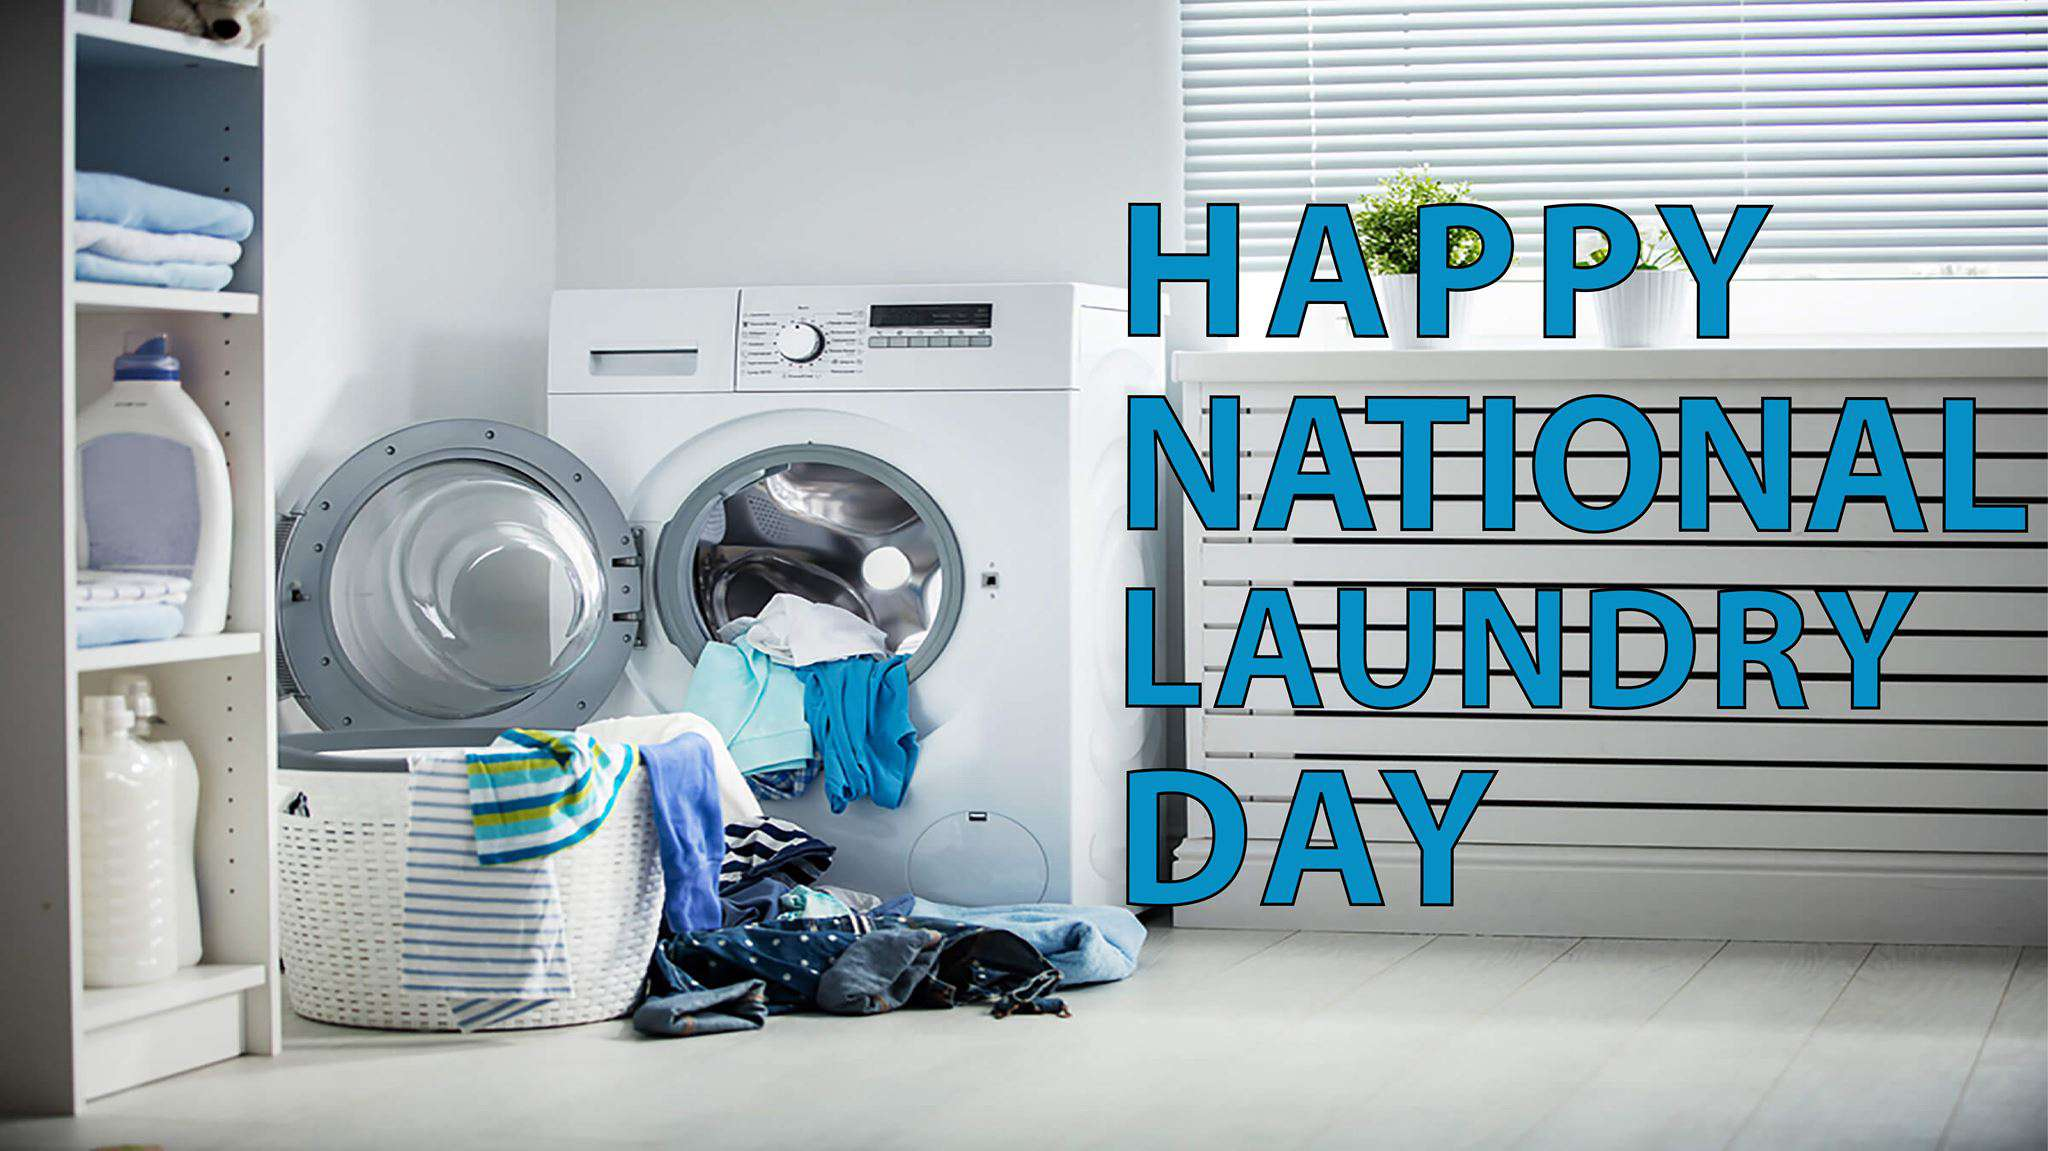 National Laundry Day Wishes Awesome Images, Pictures, Photos, Wallpapers